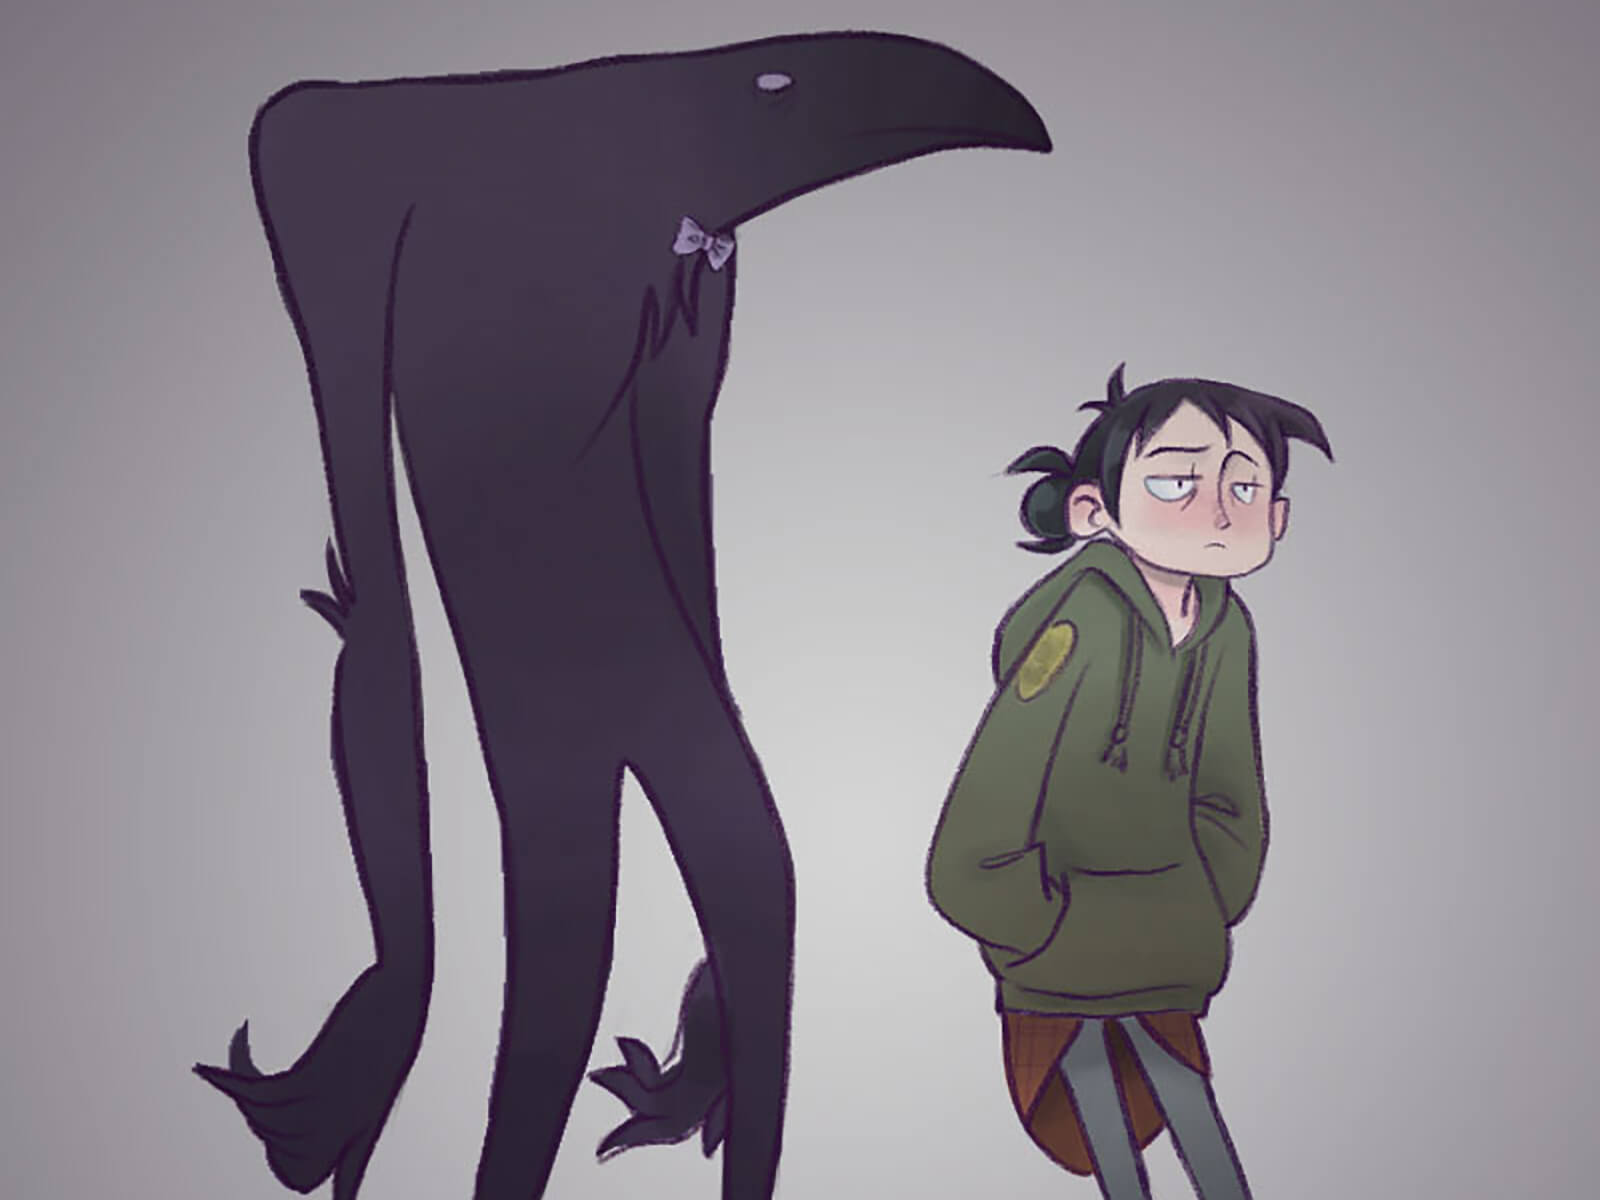 A slouchy girl in a sweatshirt next to large creature in a bow tie